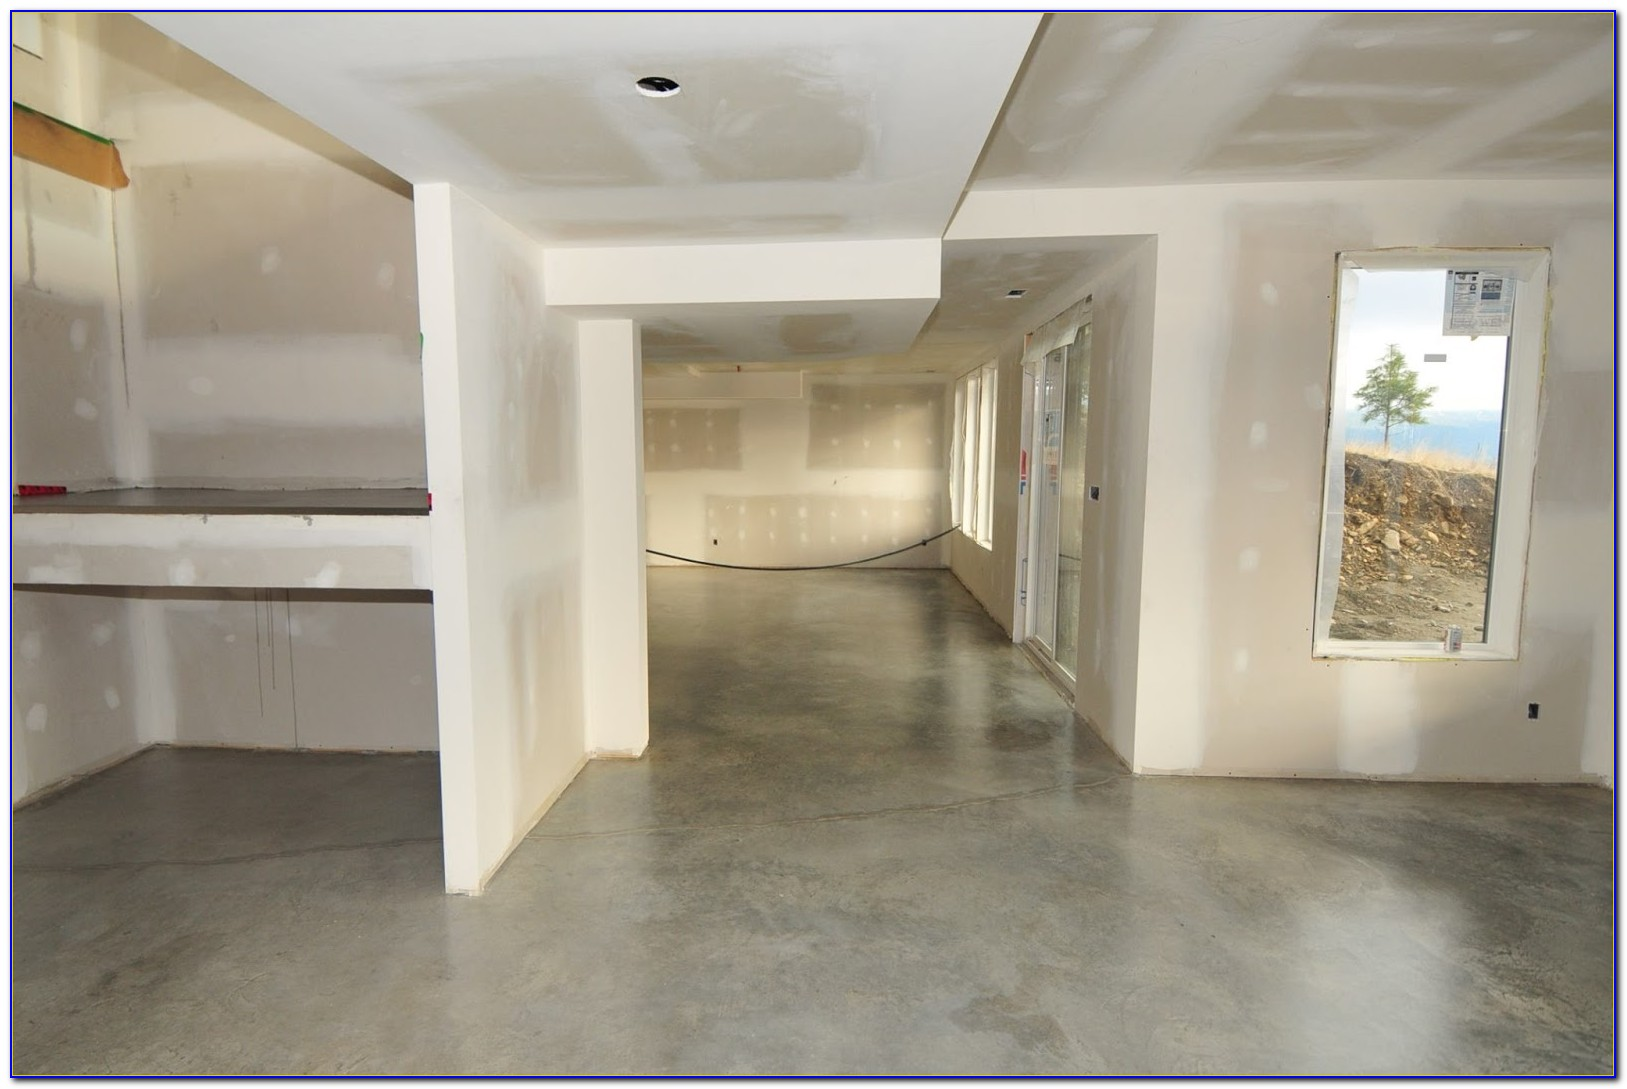 Waxing A Painted Concrete Floor